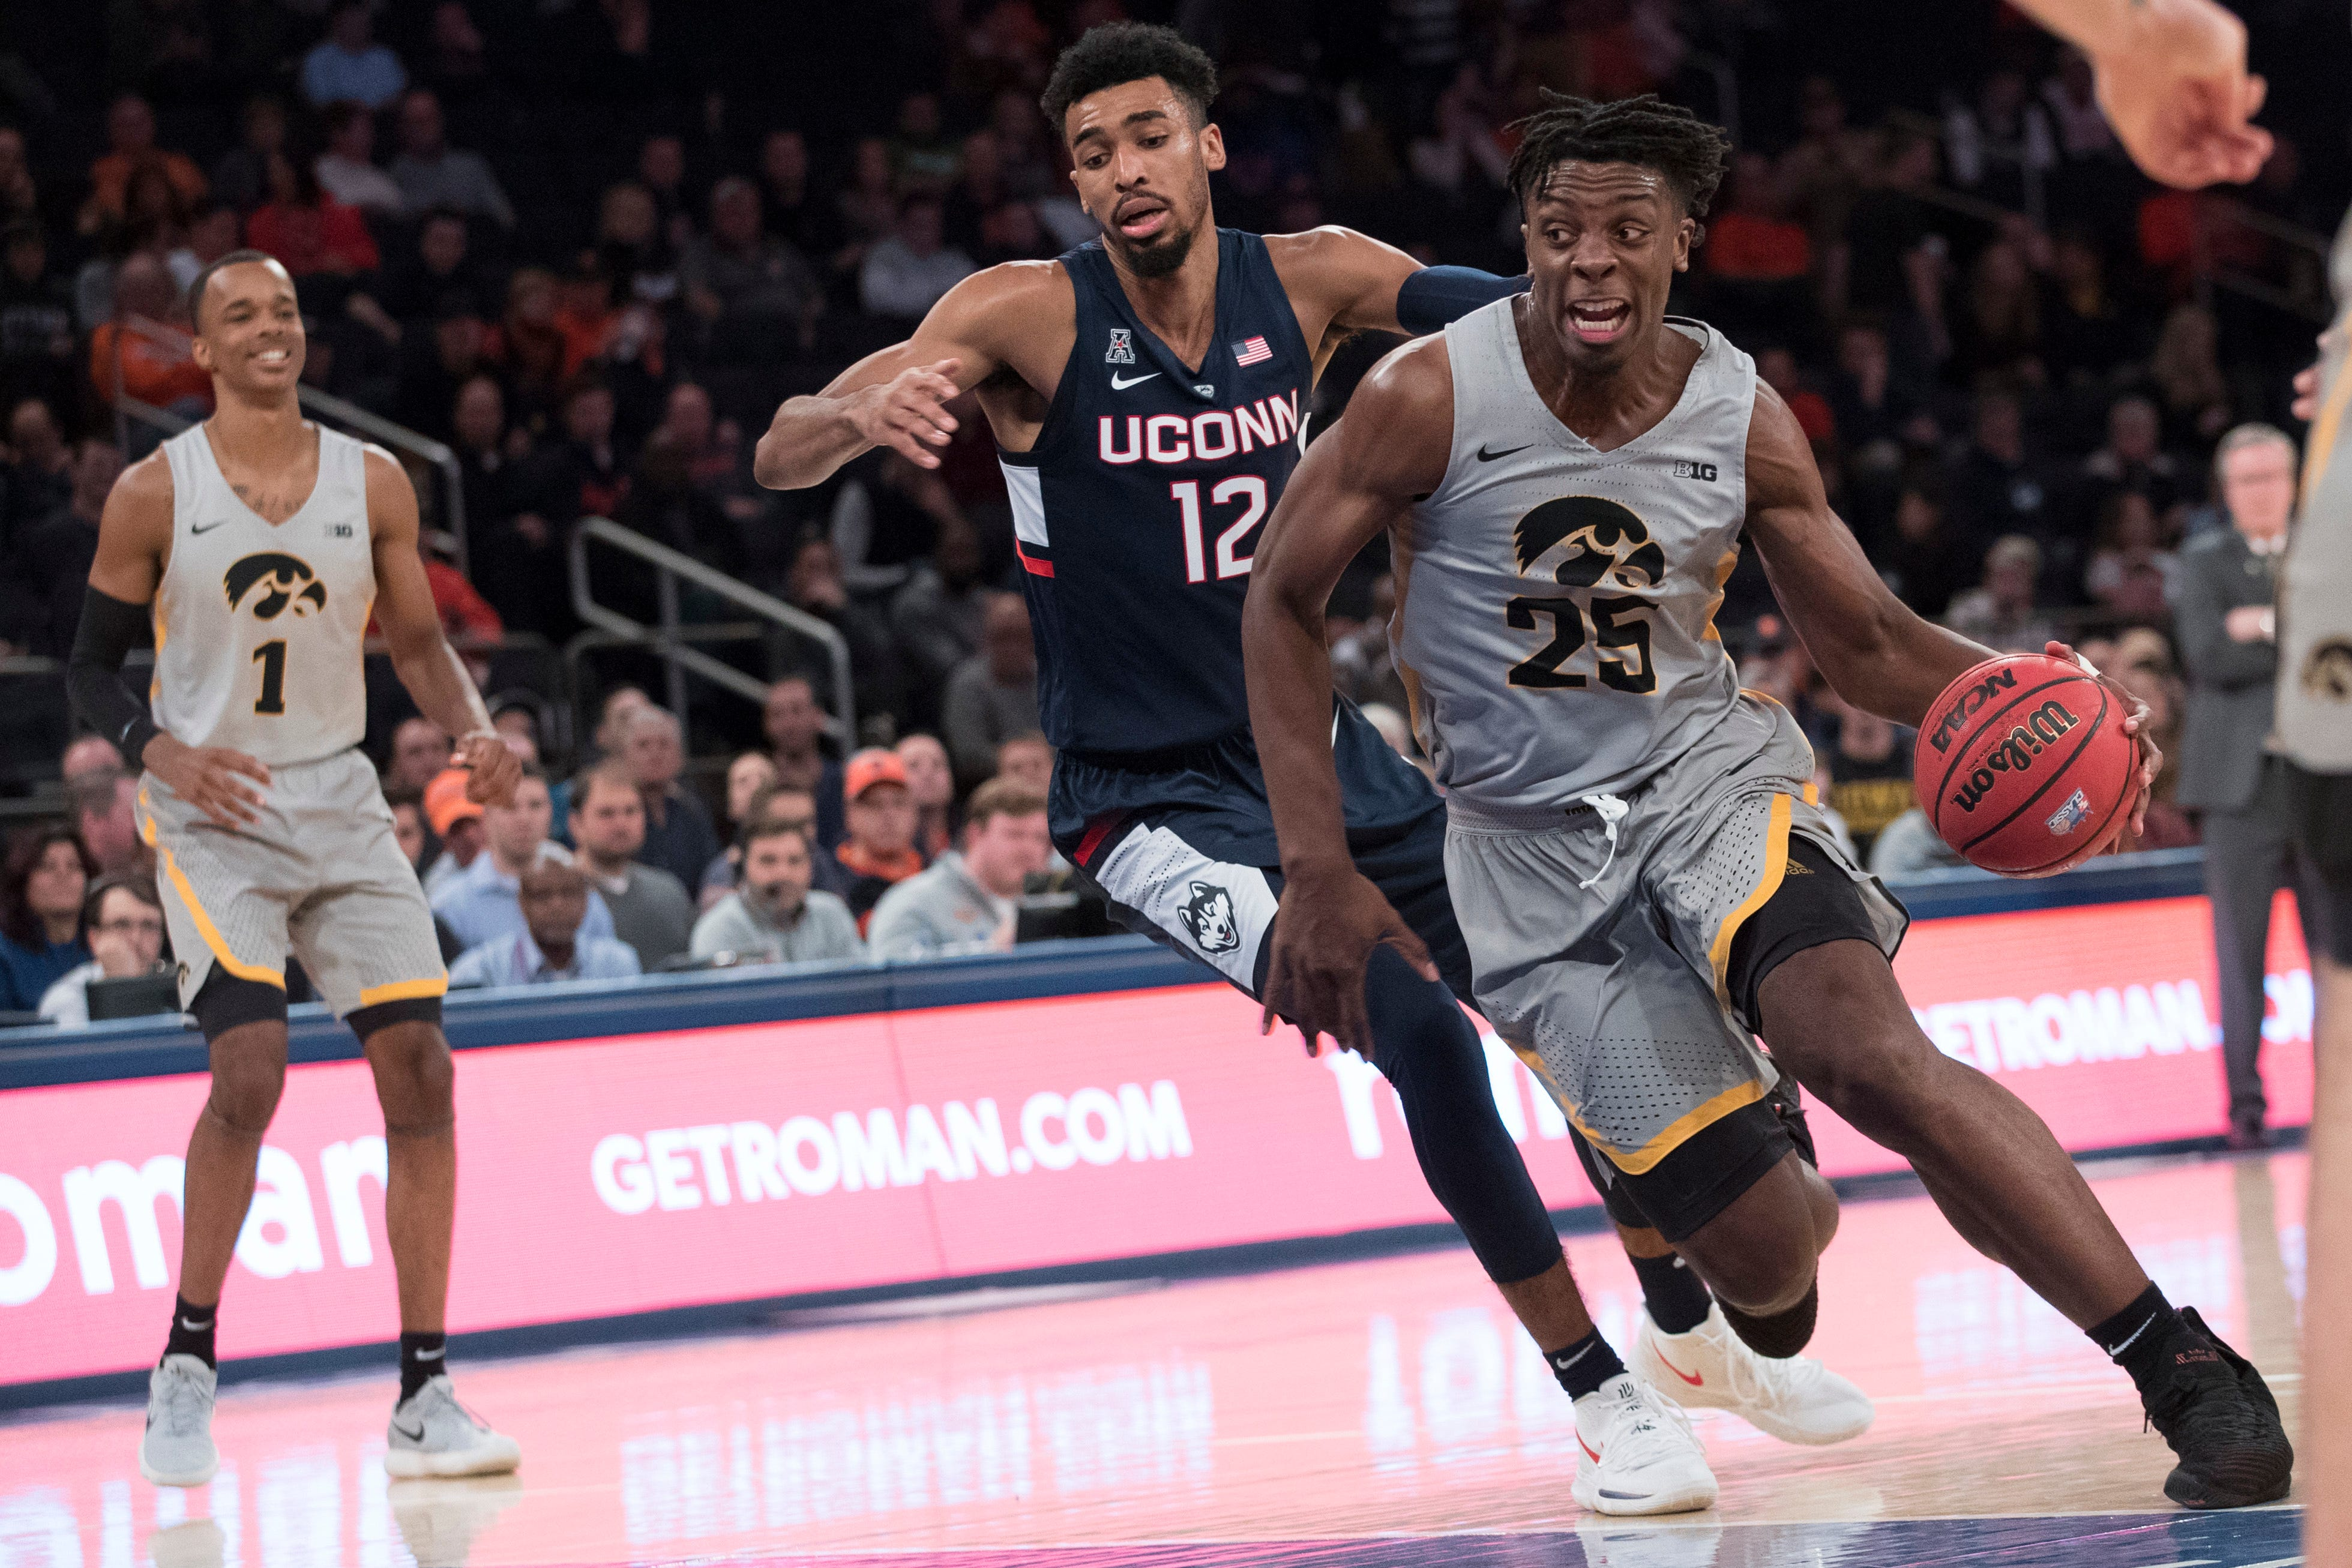 2k classic: hawkeyes beat uconn to win 2018 tournament